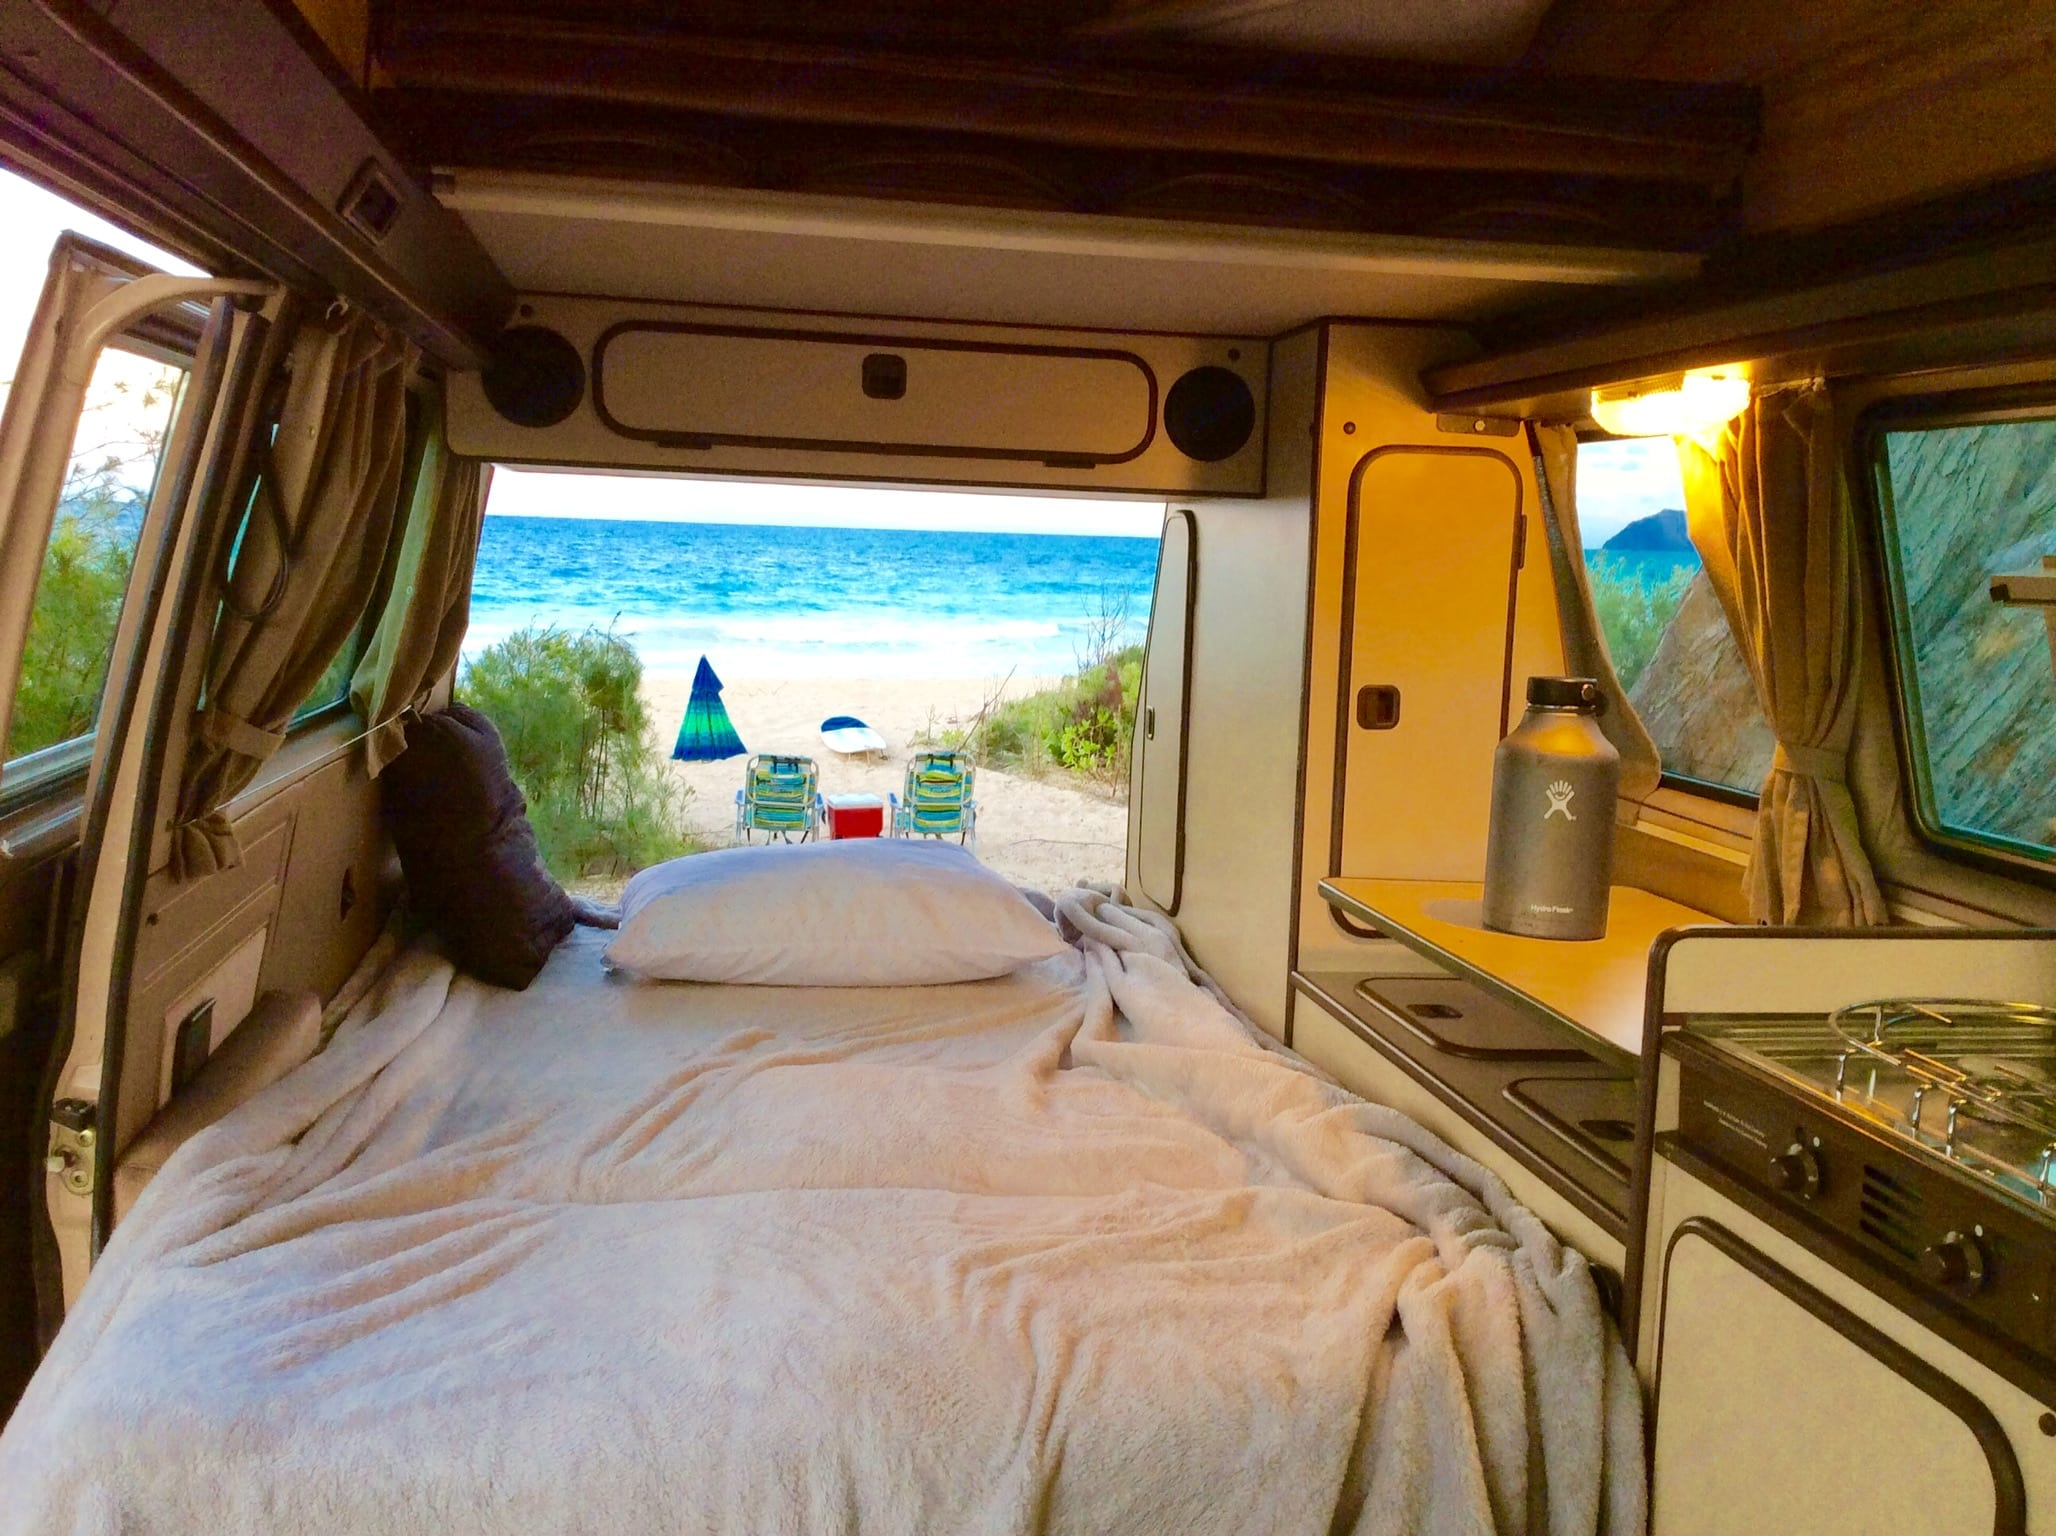 Take a nap after snorkeling (set provided) or body boarding (boards also provided). Volkswagen Vanagon Westfalia 1984